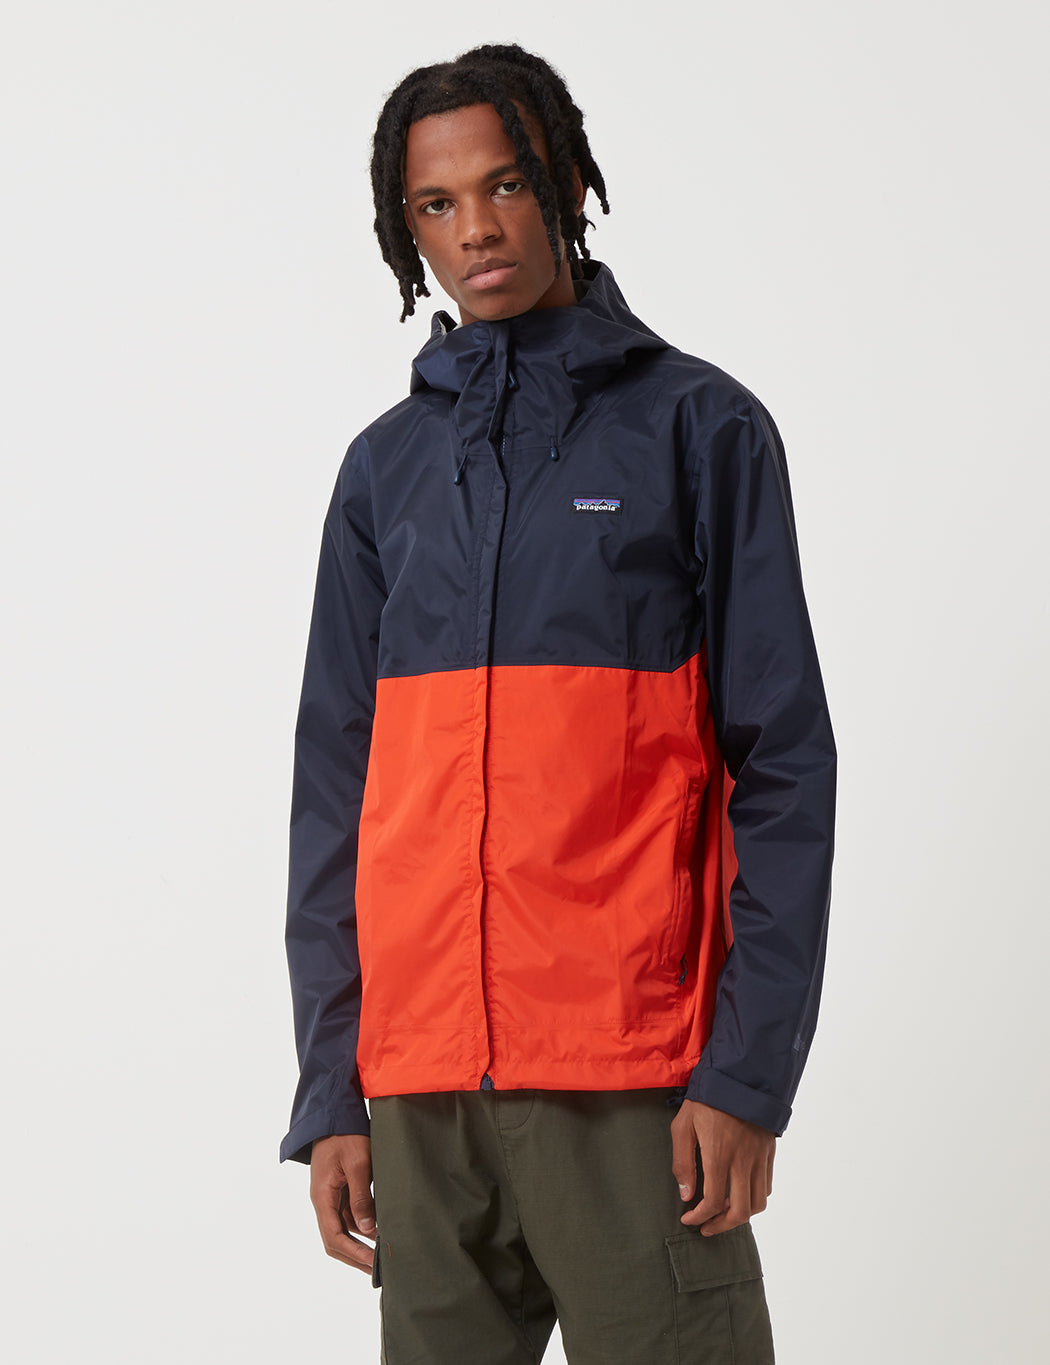 75ec69dc1dcc2 Patagonia Torrentshell Two-Tone Jacket in Navy Blue Paintbrush Red